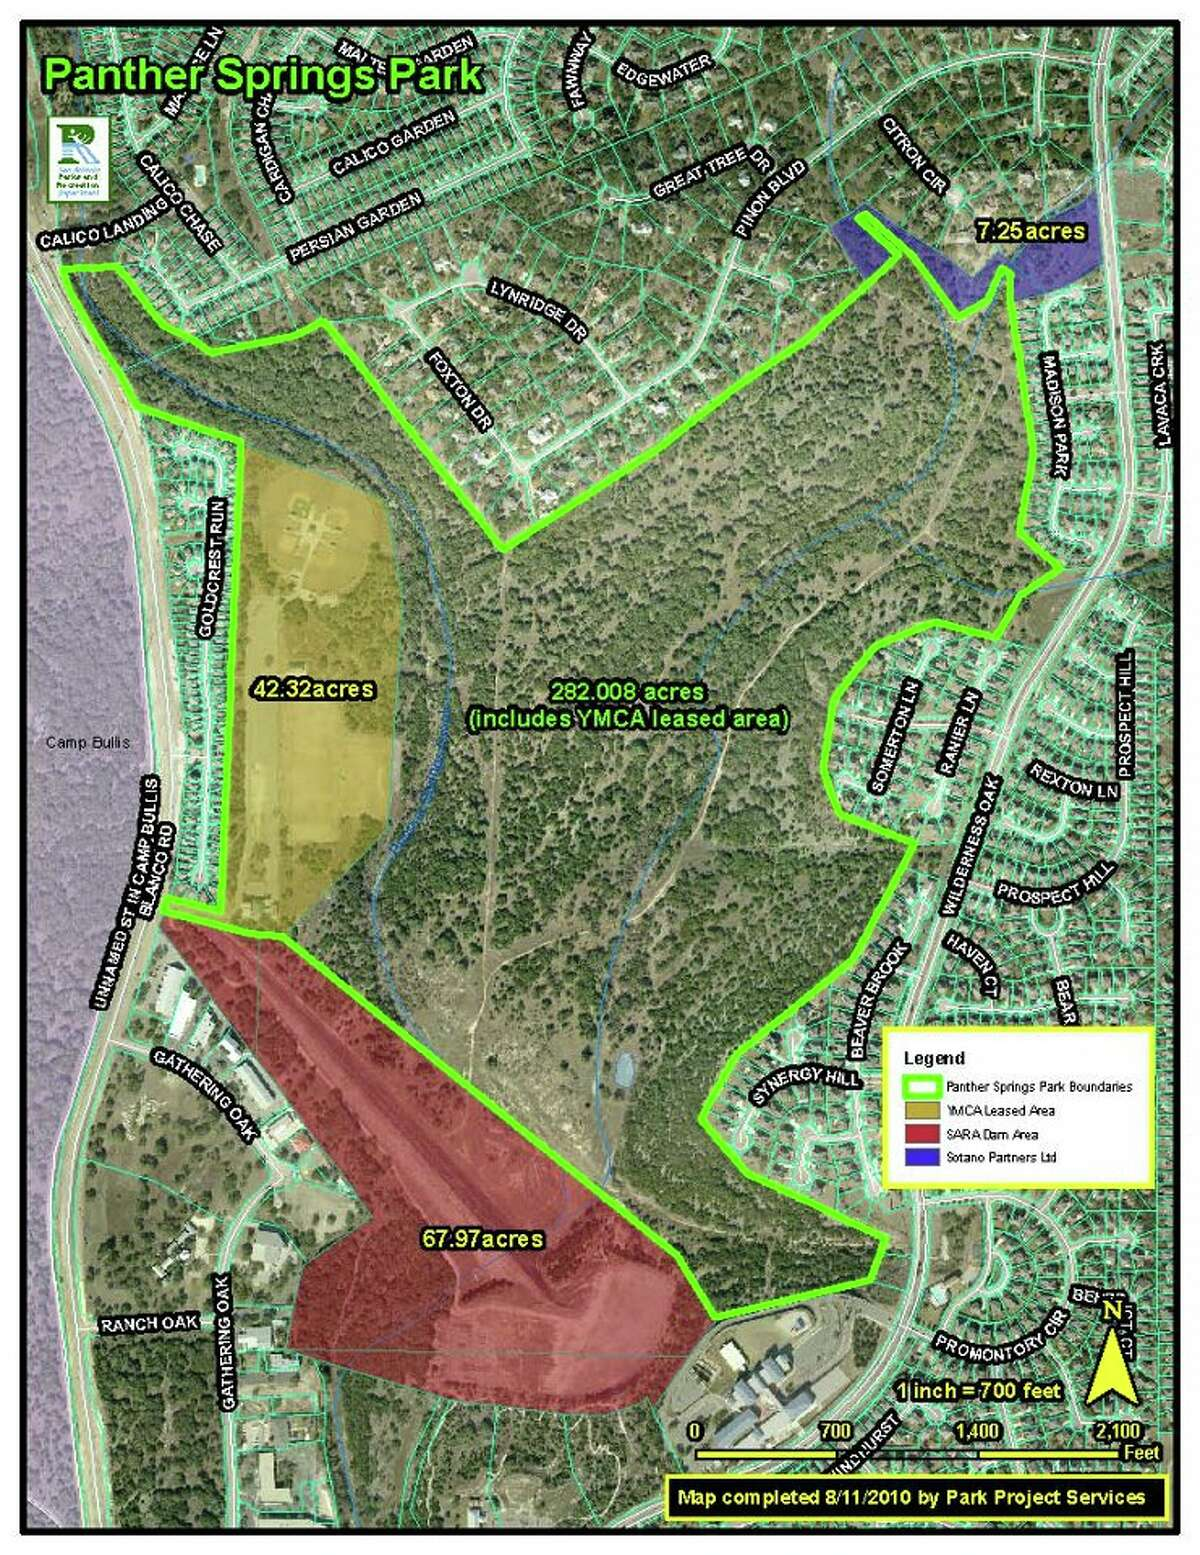 Panther Springs Park, is a 289 acre tract of undeveloped park land located in the Stone Oak/Wilderness Oak area in North Central San Antonio.